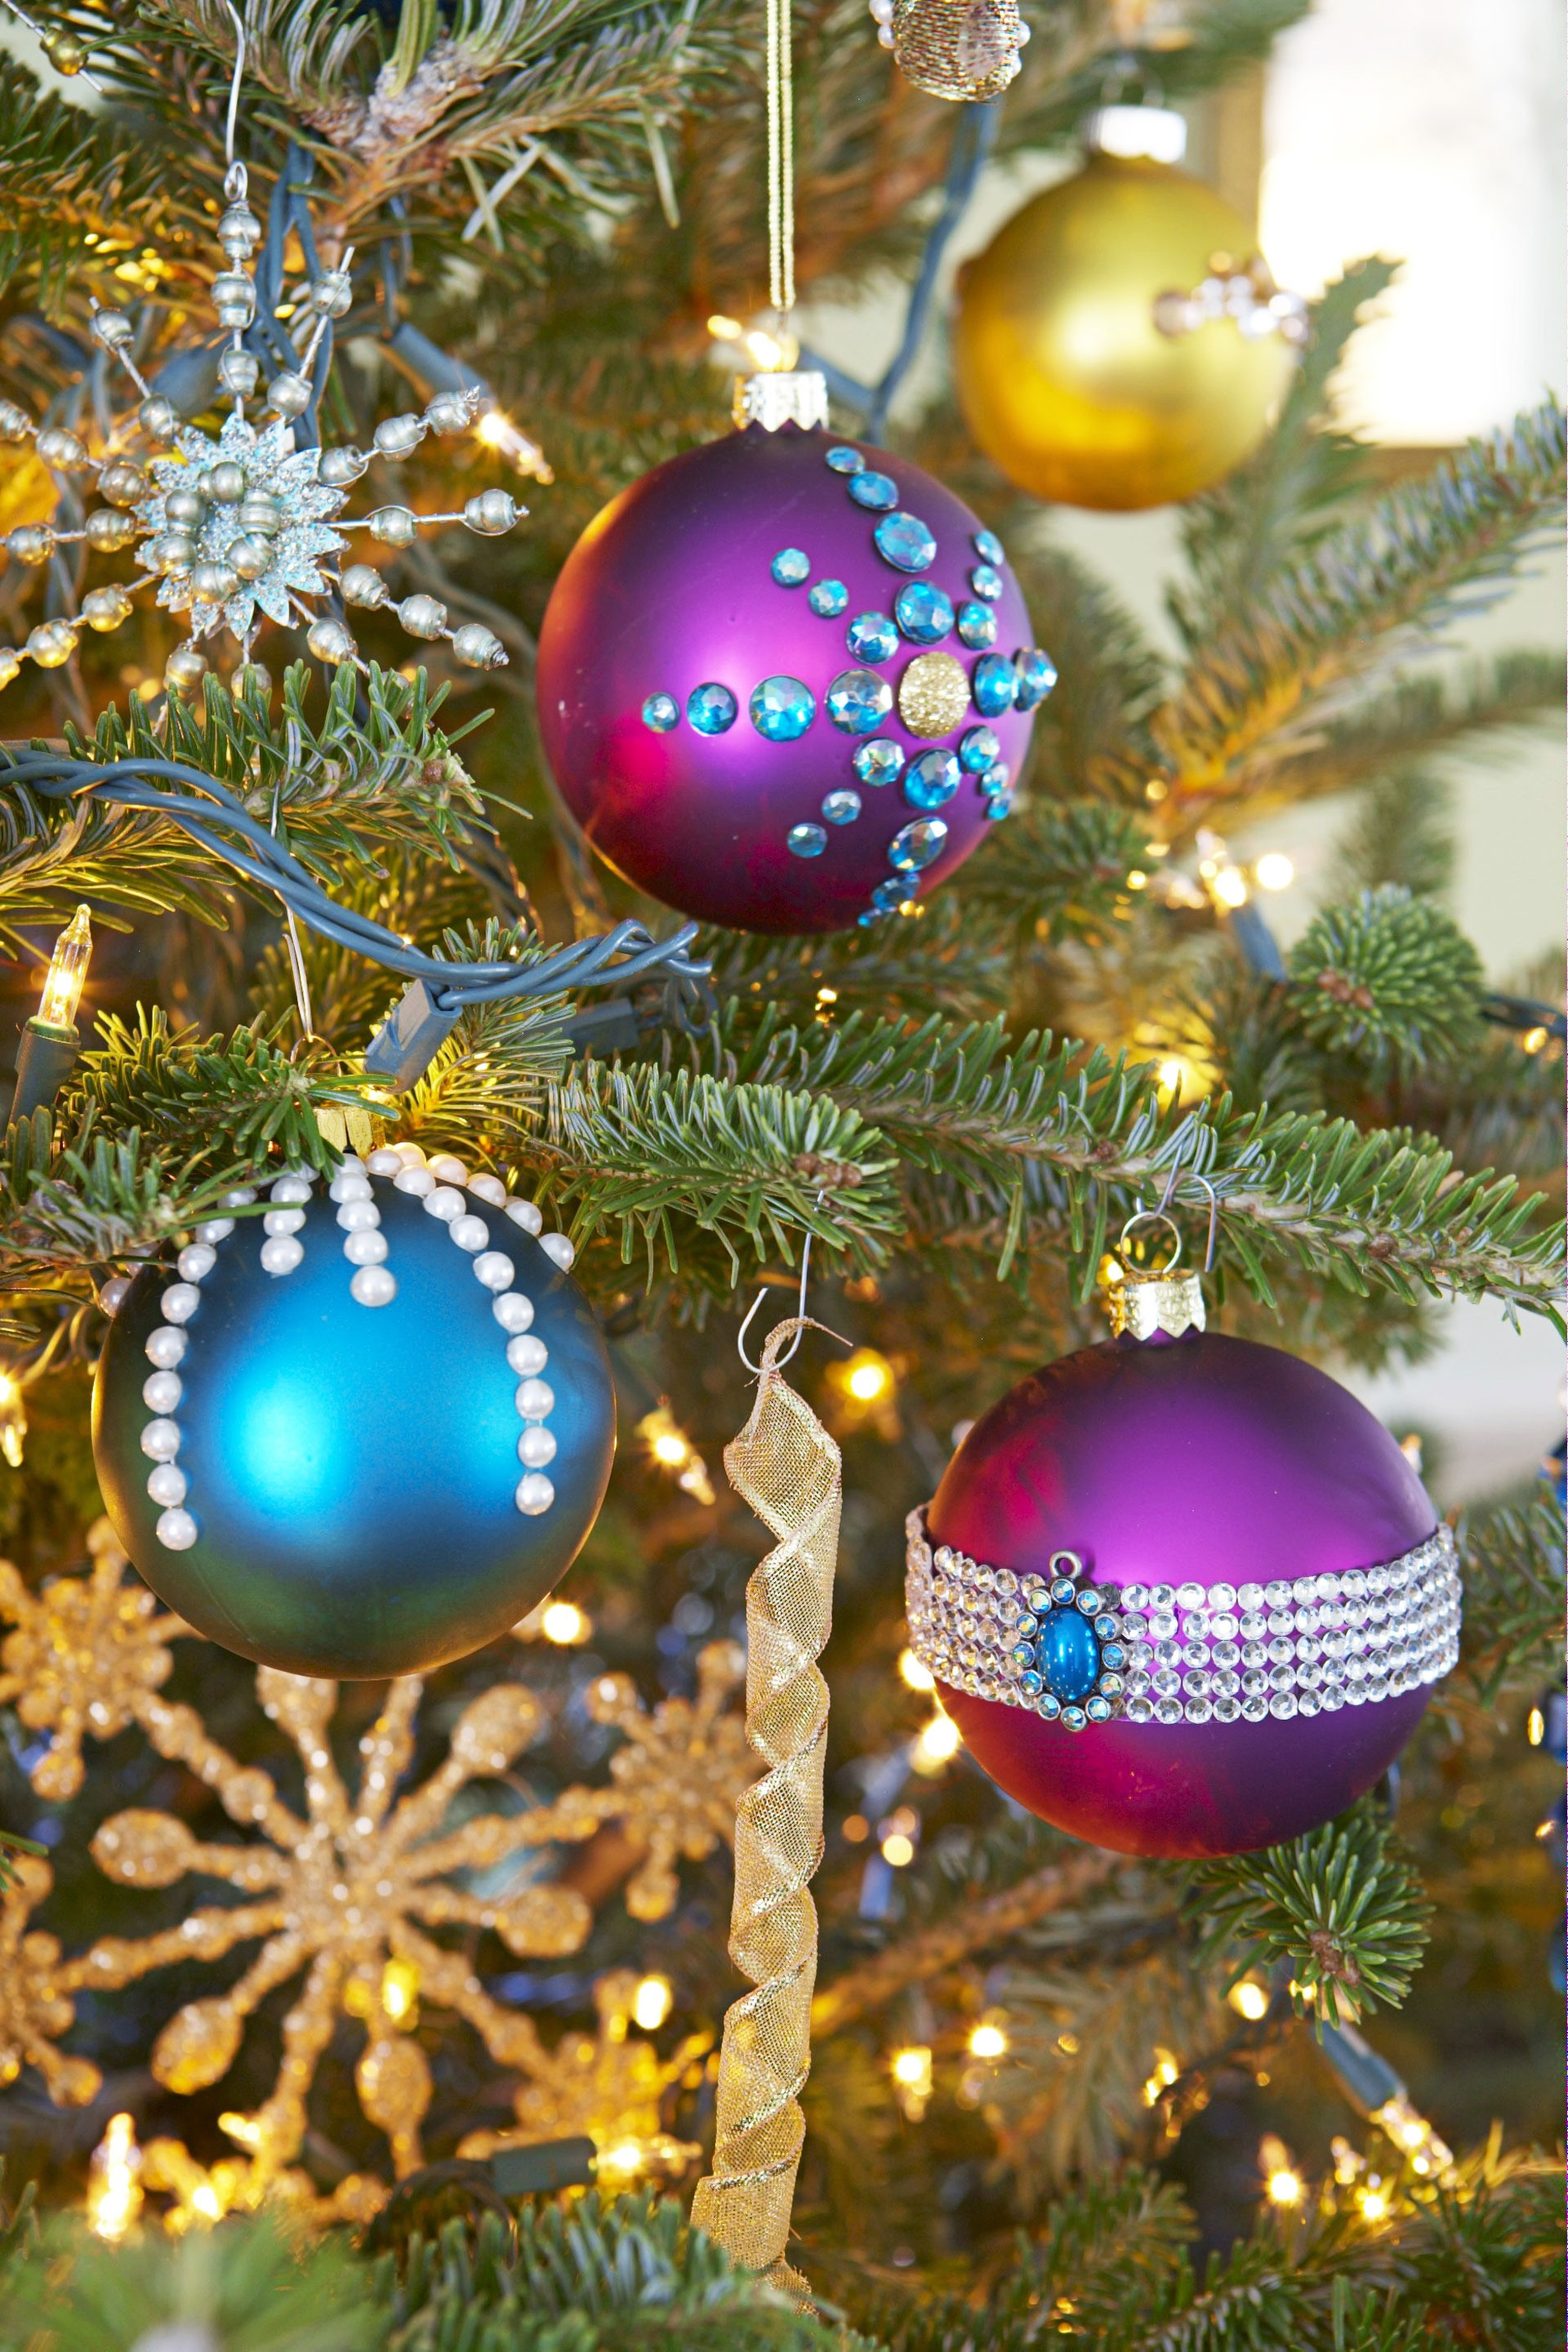 Best Of 50 Homemade Christmas ornaments – Diy Handmade Holiday ornaments On Christmas Tree Of Delightful 46 Images ornaments On Christmas Tree